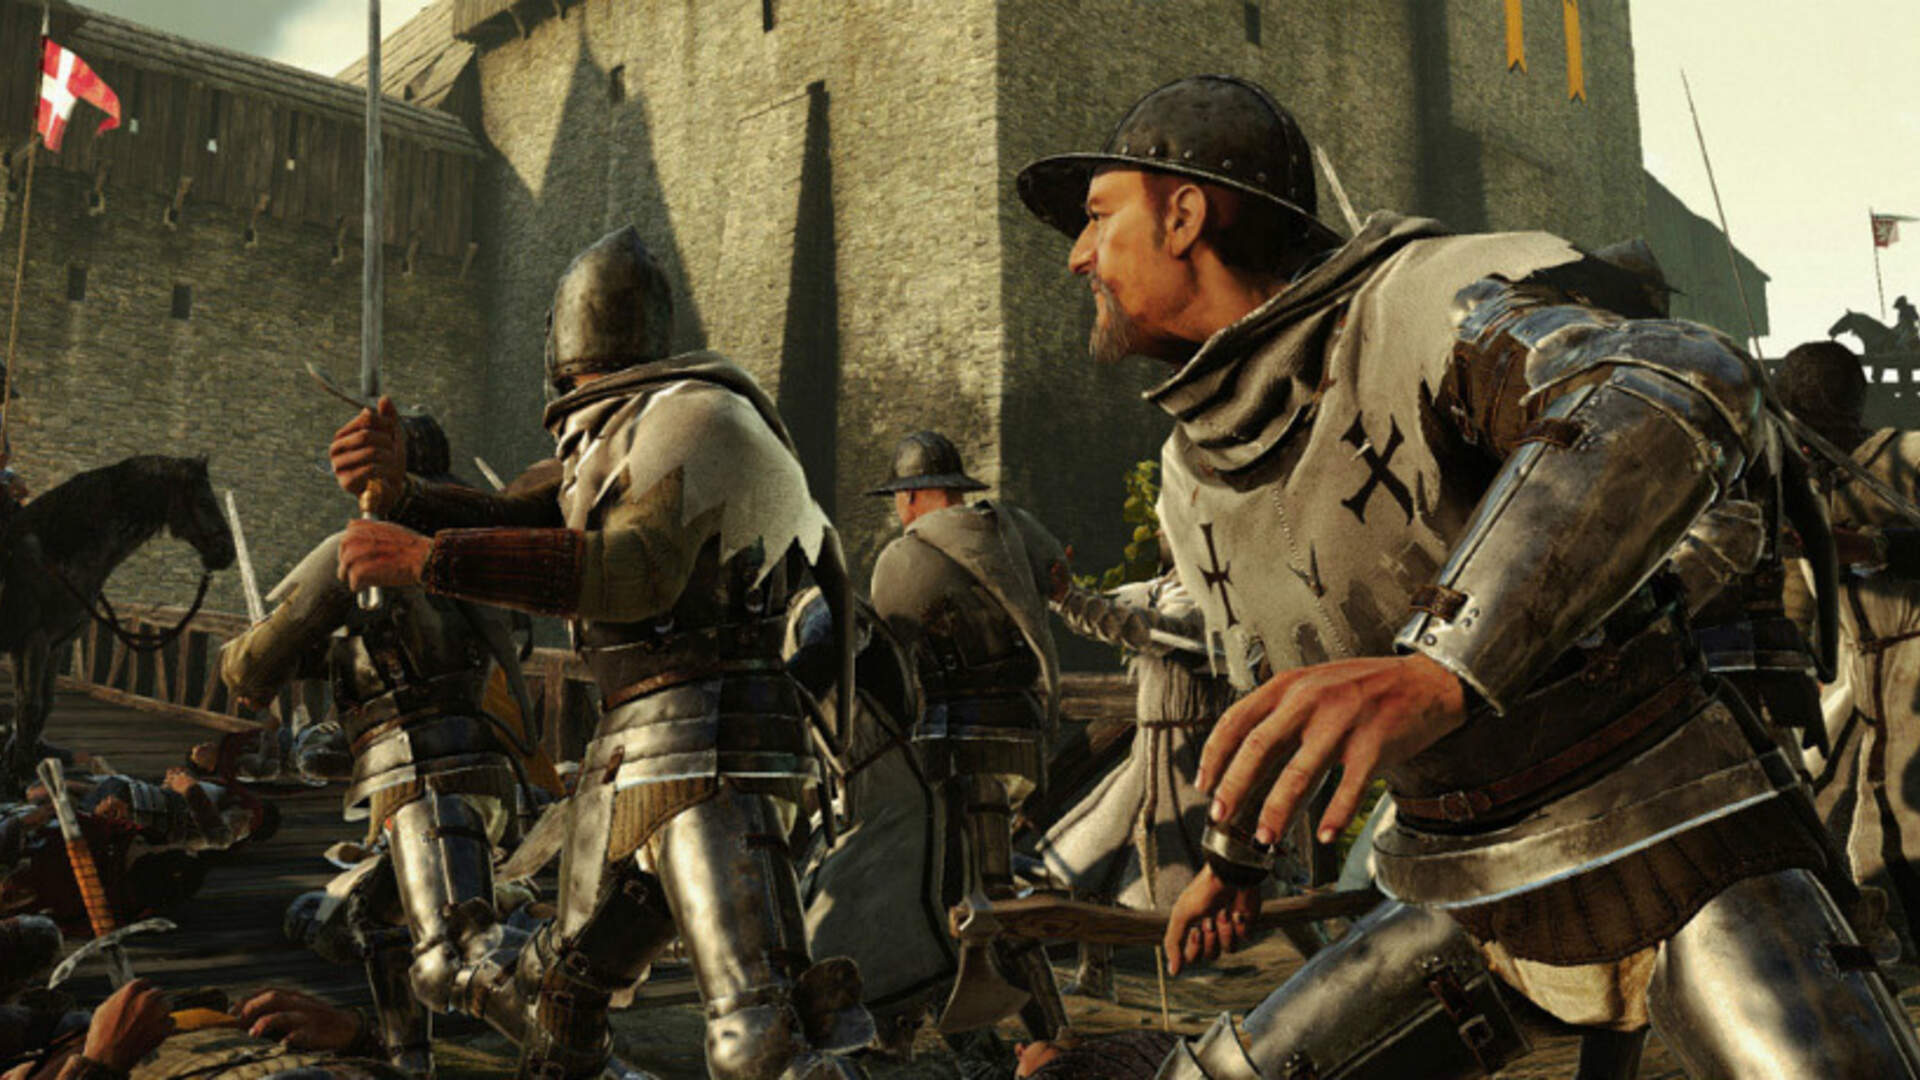 Game of Thrones Mod for Kingdom Come: Deliverance Combines a Grim Fantasy with a Grim Reality